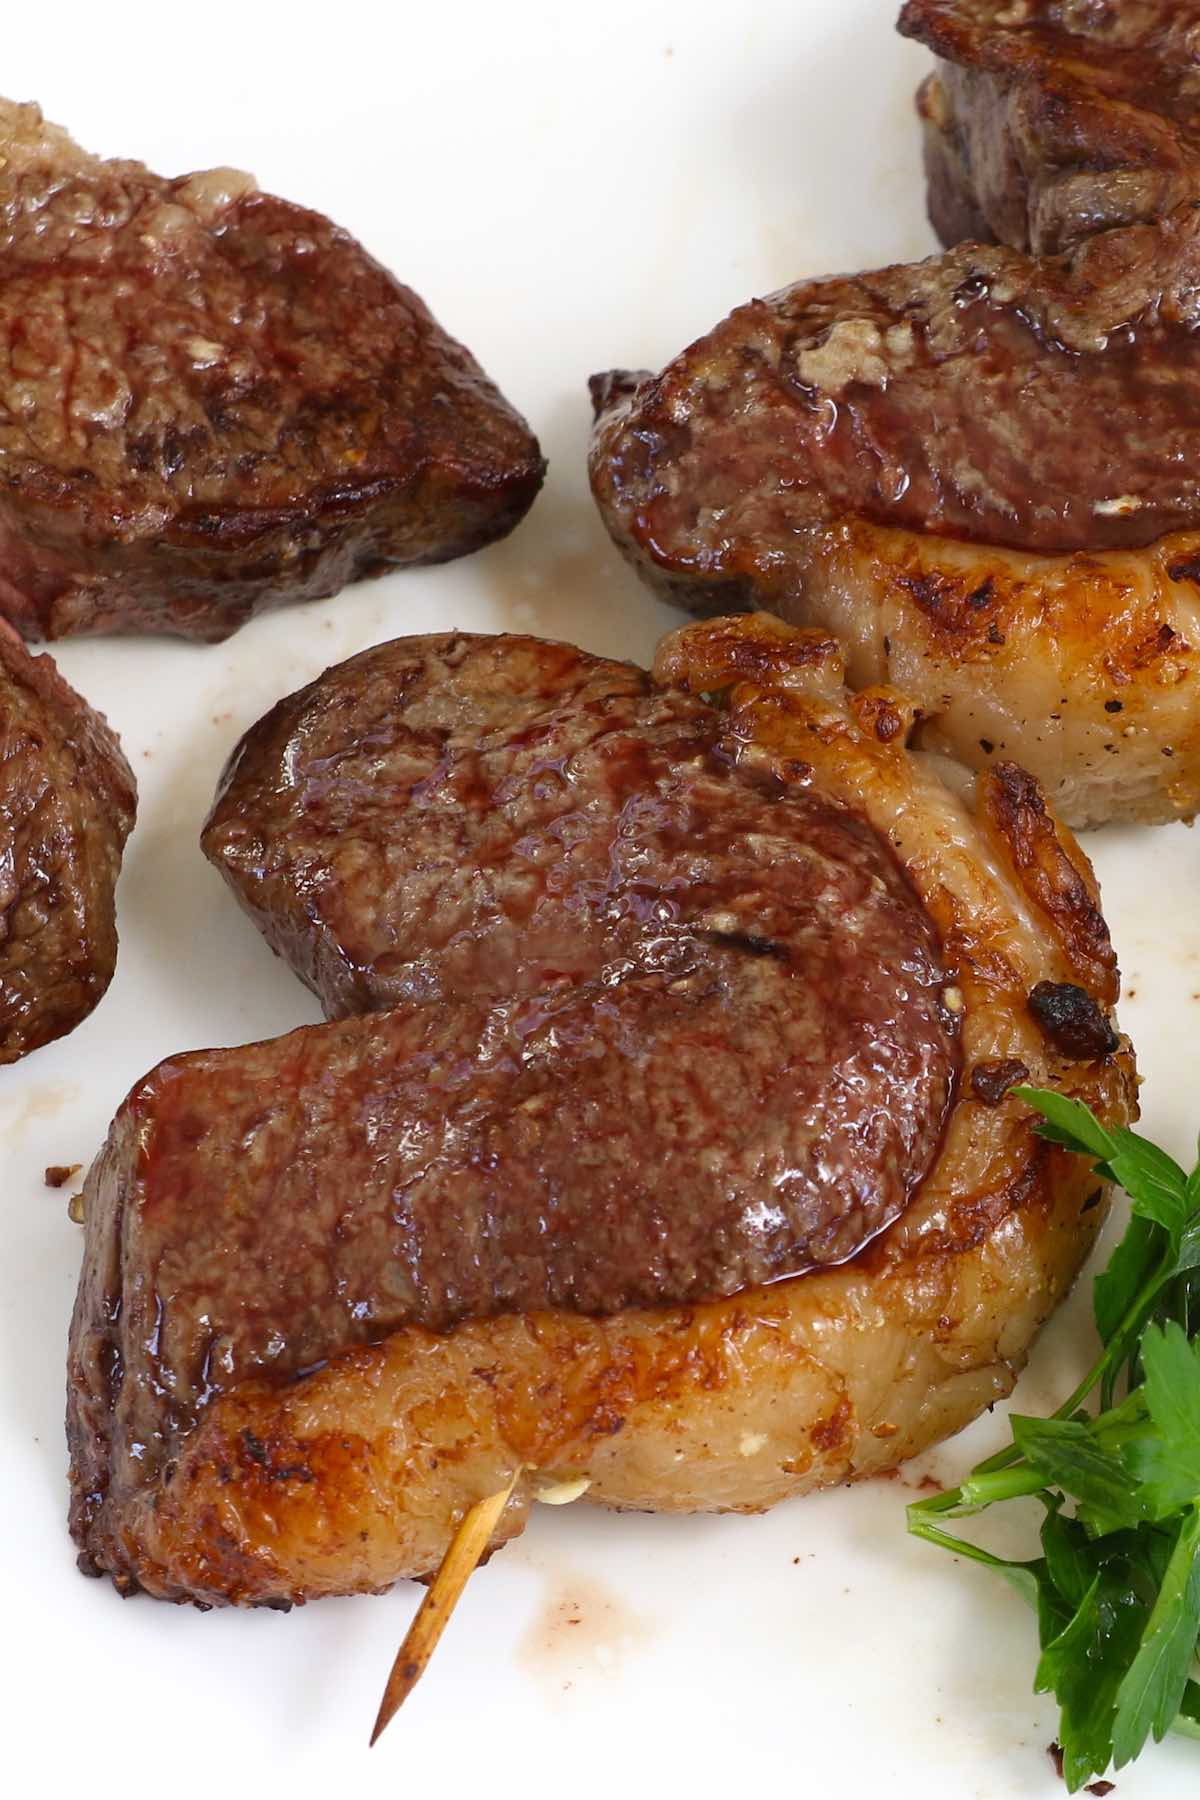 Picanha steak cooked Brazilian style on skewers in horseshoe shapes